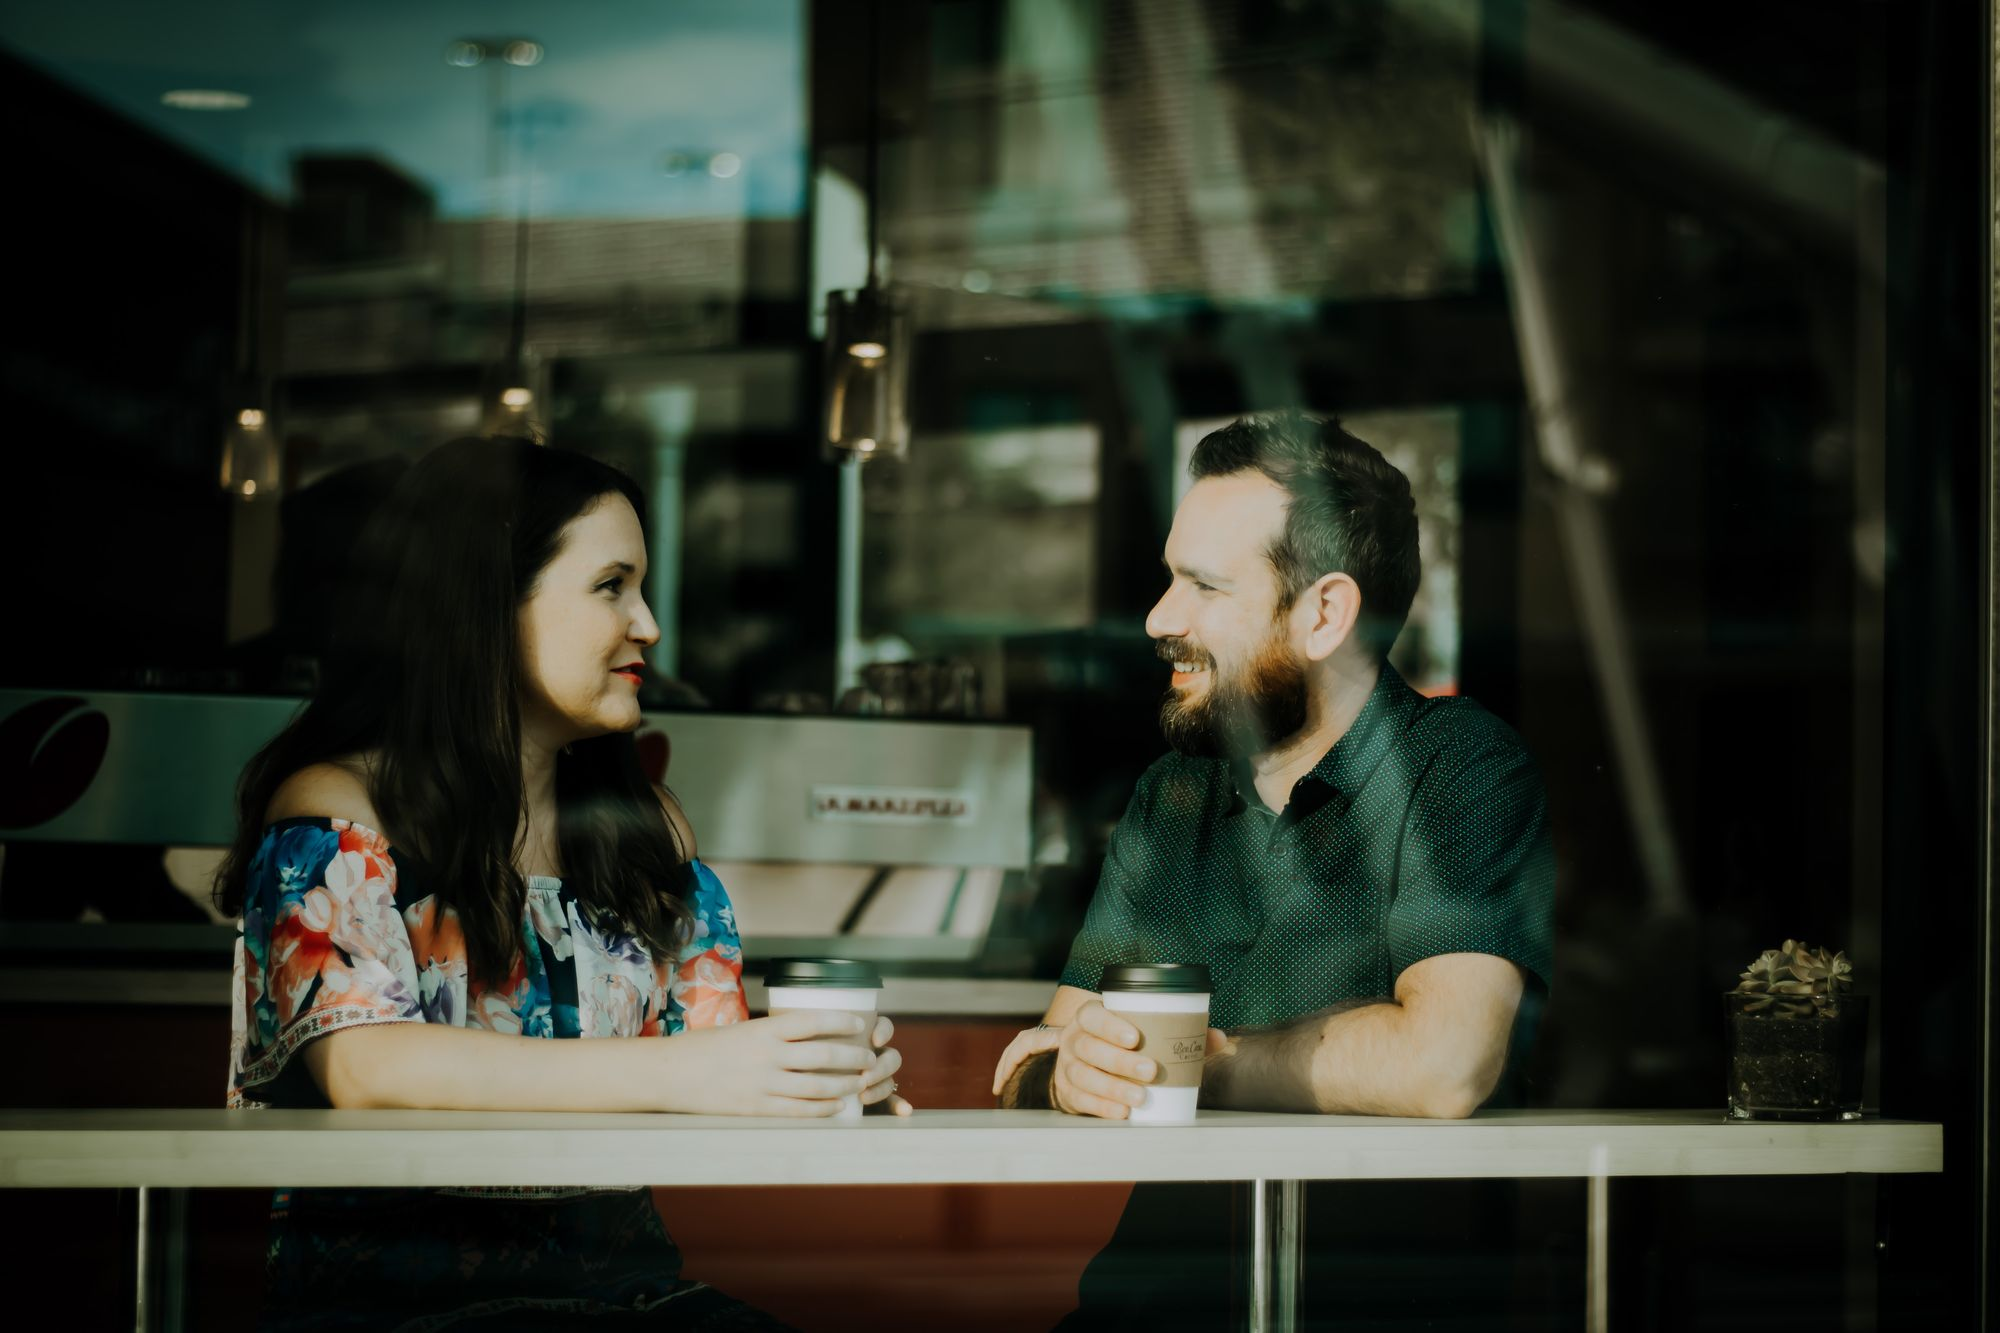 Two coworkers talking over coffee in a cafe.